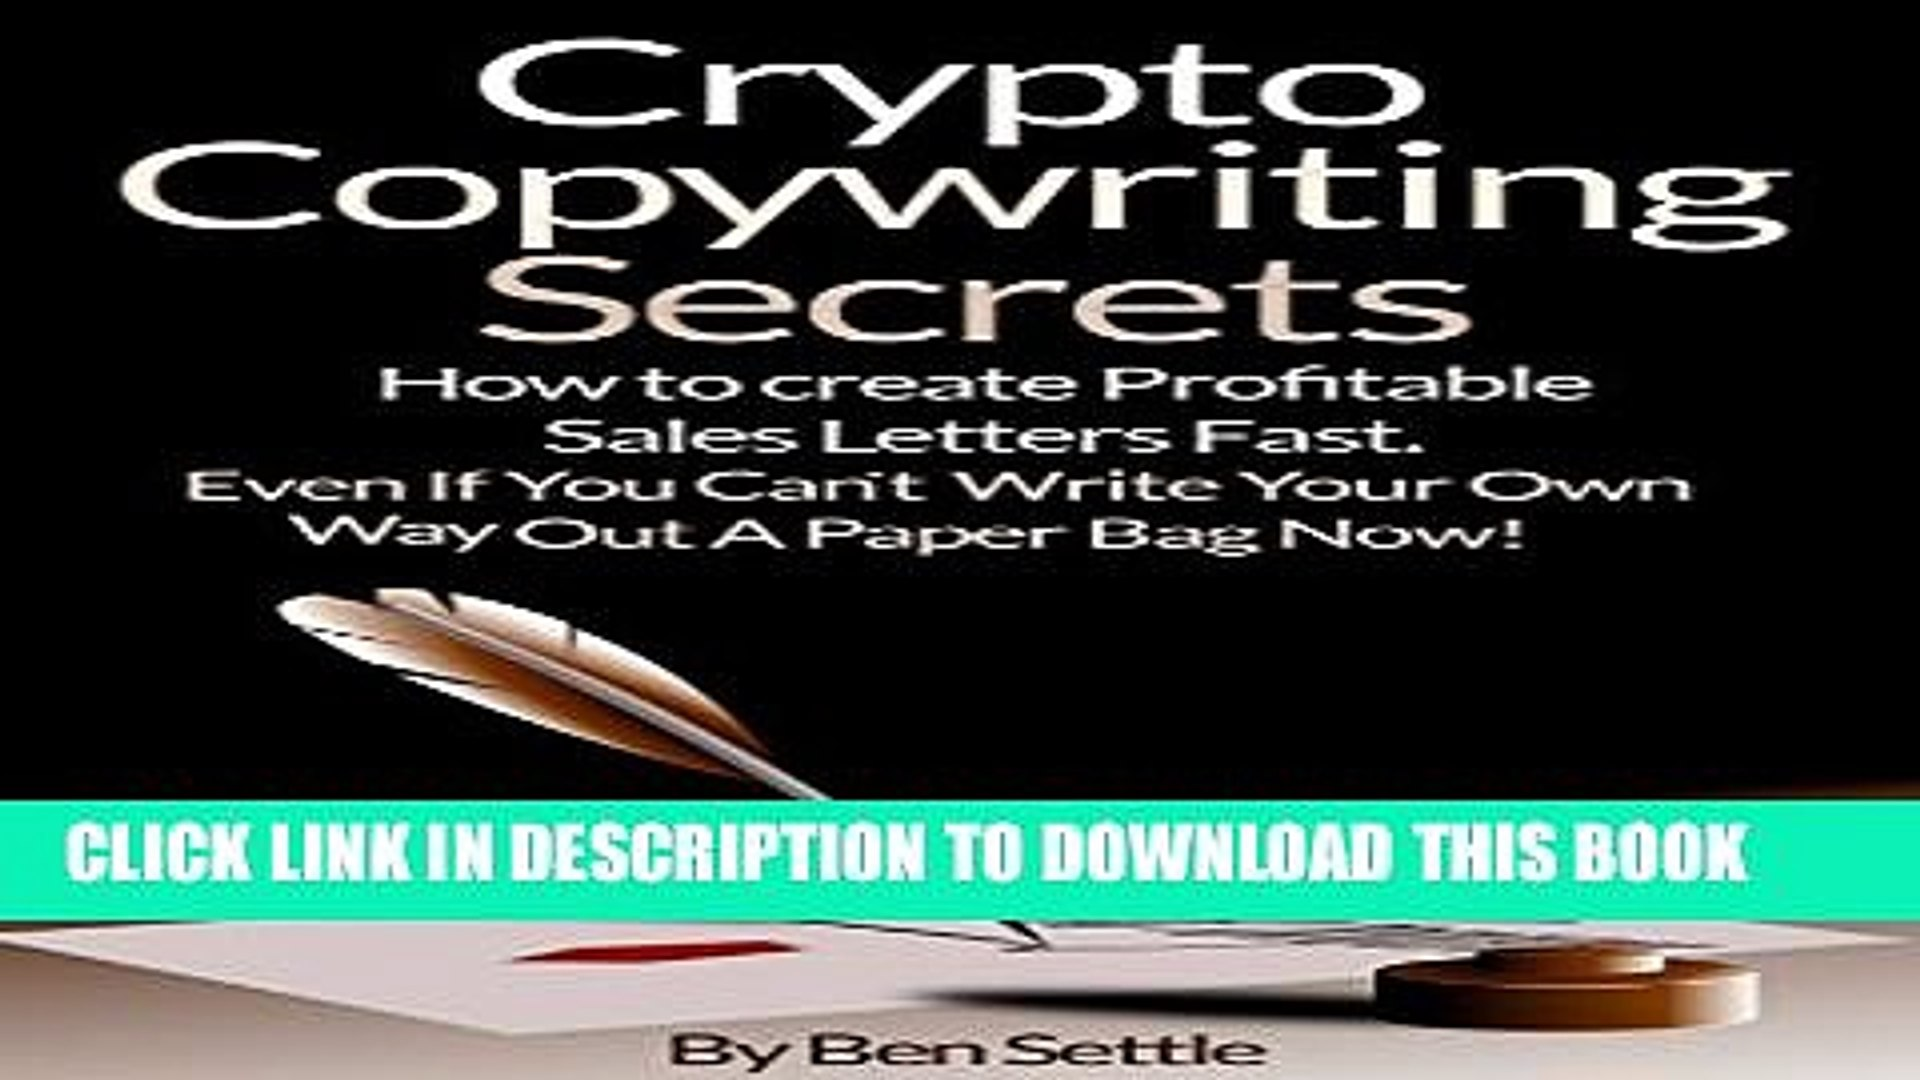 Collection Book Crypto Copywriting Secrets - How to create profitable sales letters fast - even if